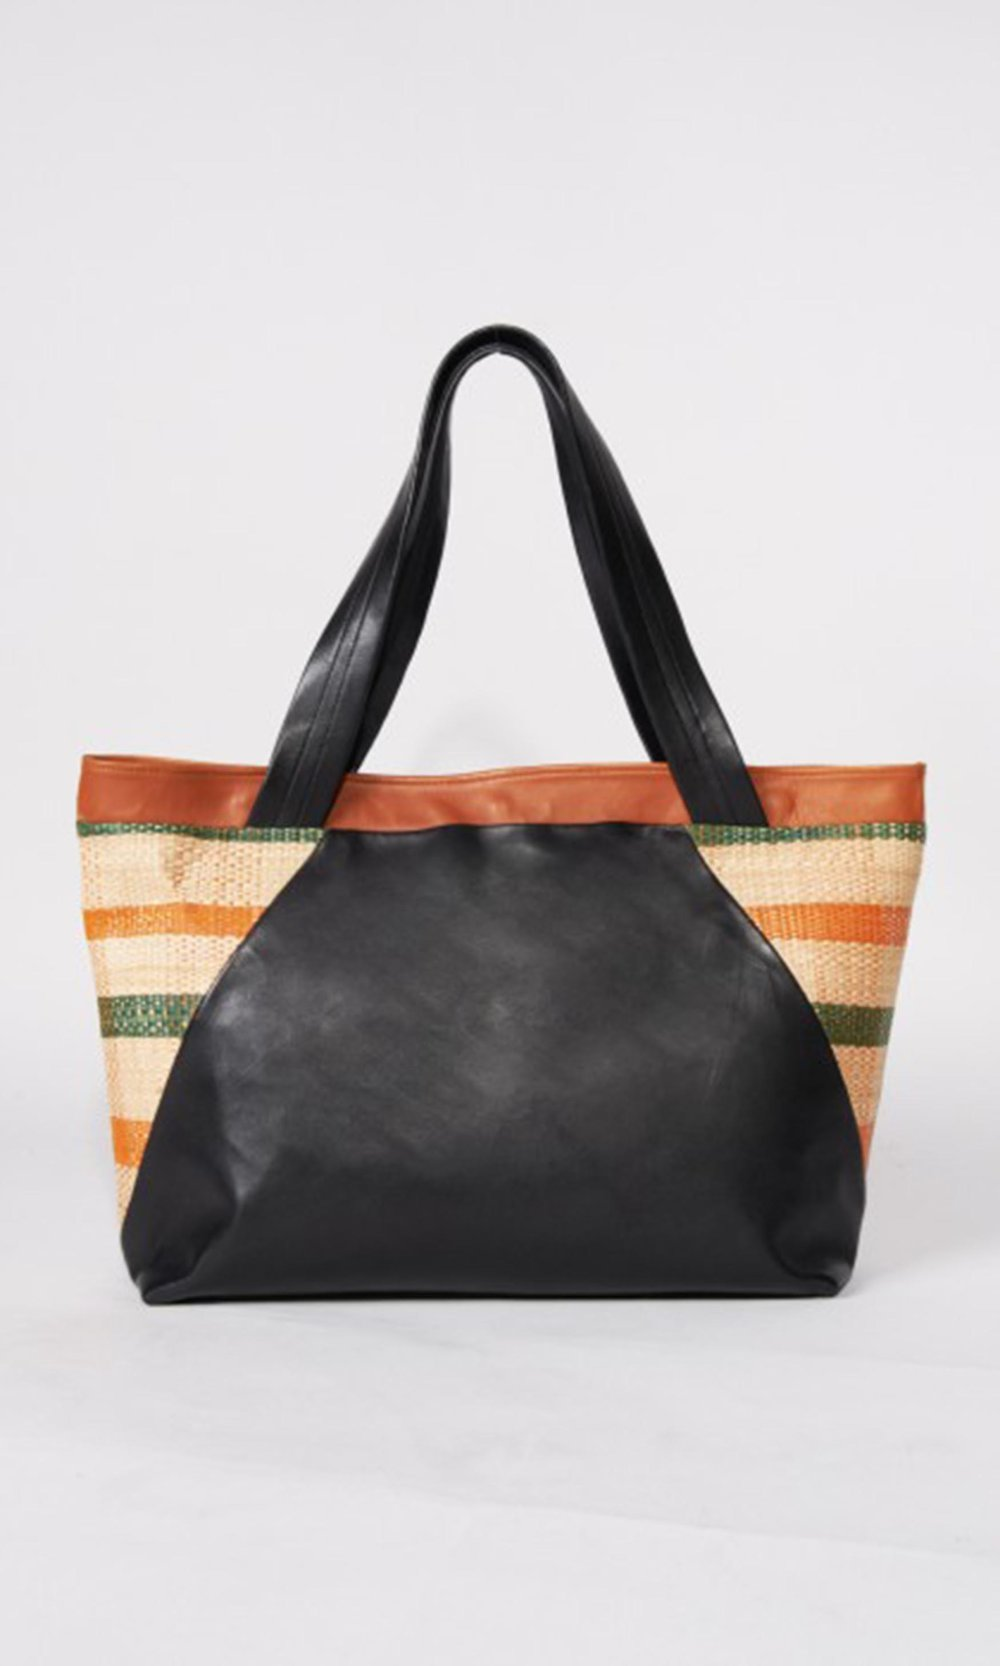 raphia-leather-totebag-shopping-bag-madeinafrica-madeingabon.jpg